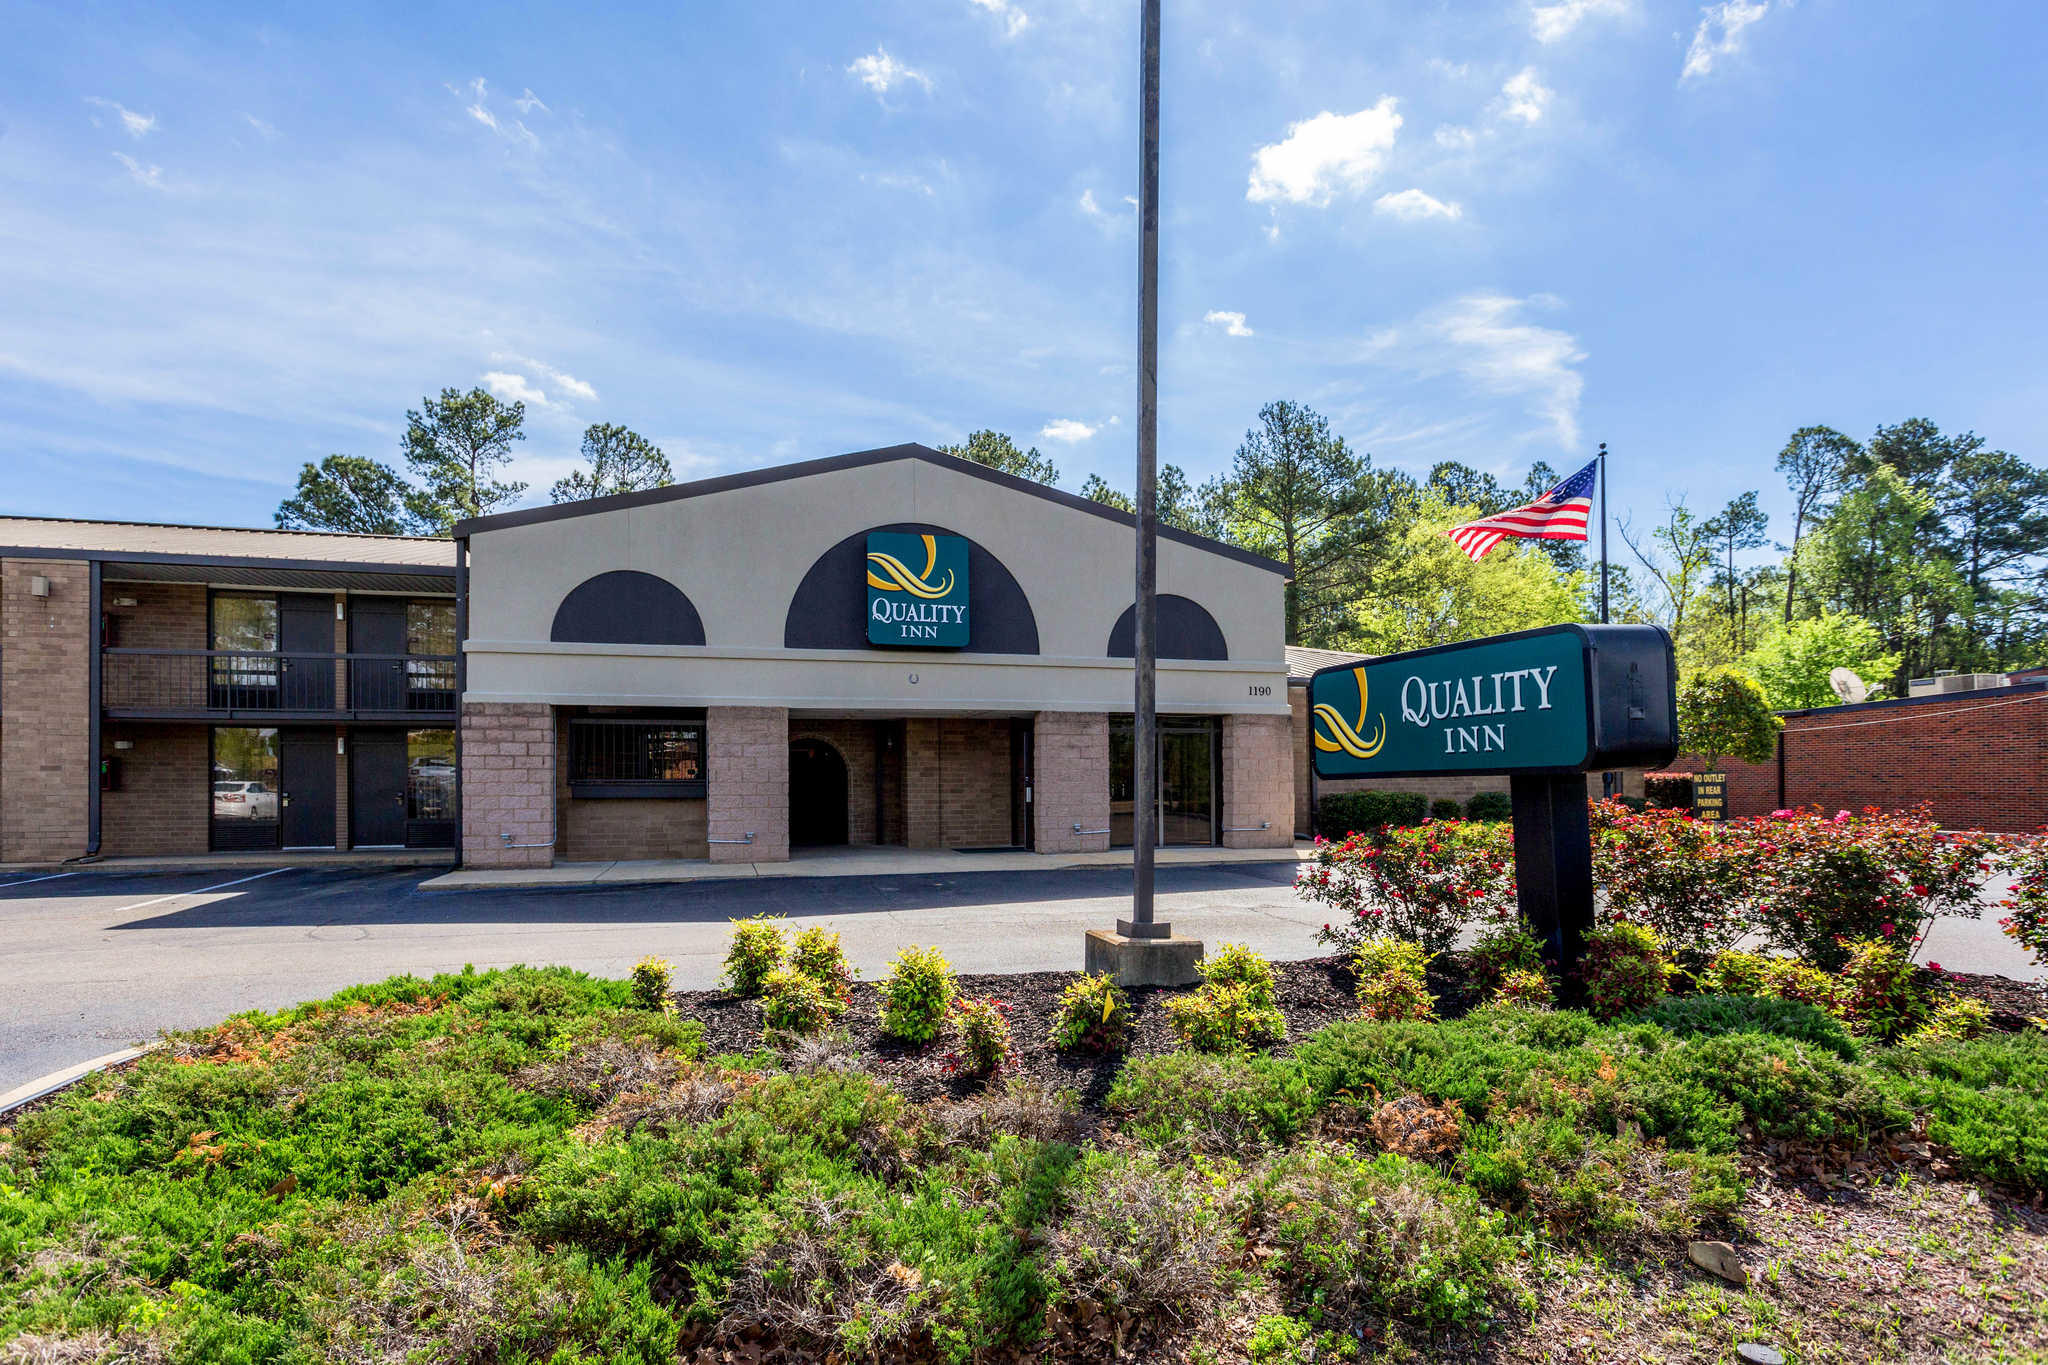 Quality Inn Coupons Near Me In Tupelo 8coupons